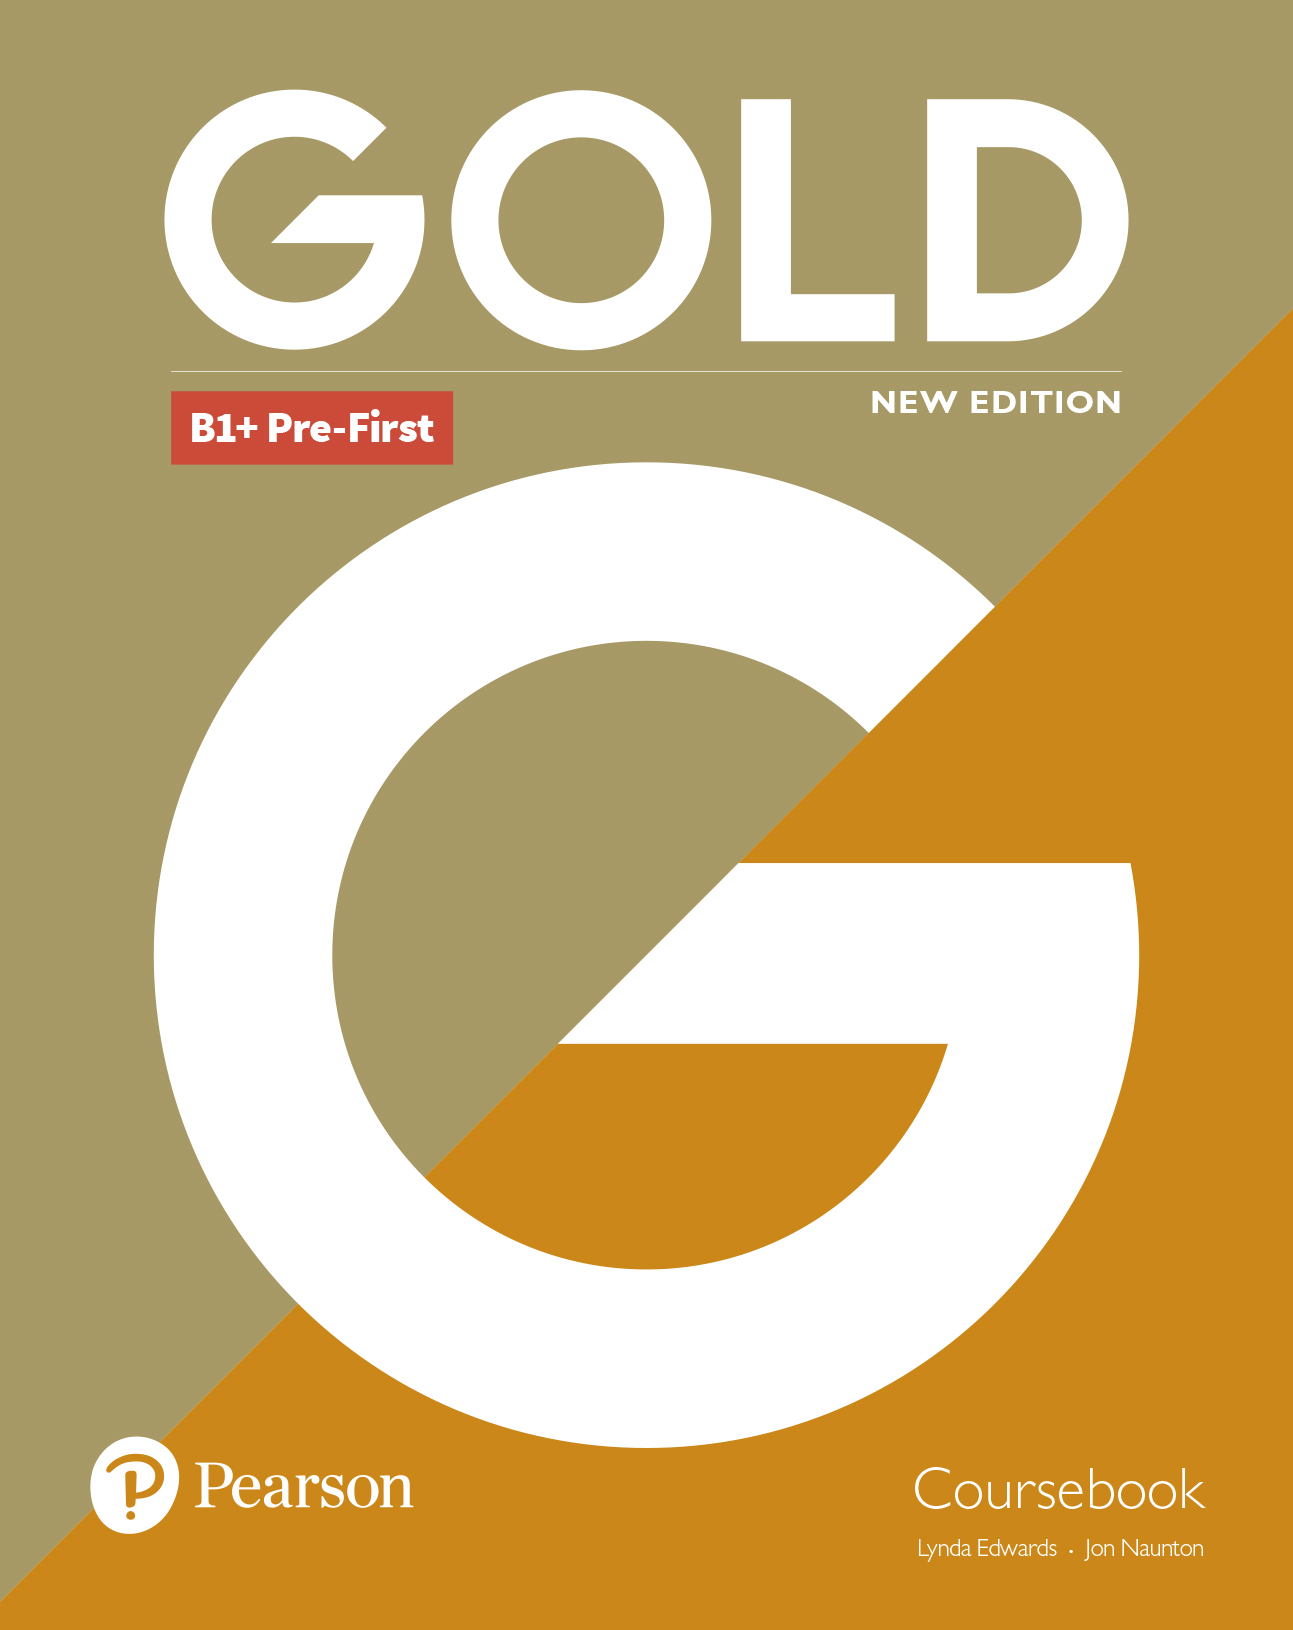 Libros B2 Ingles Pdf Gold Series